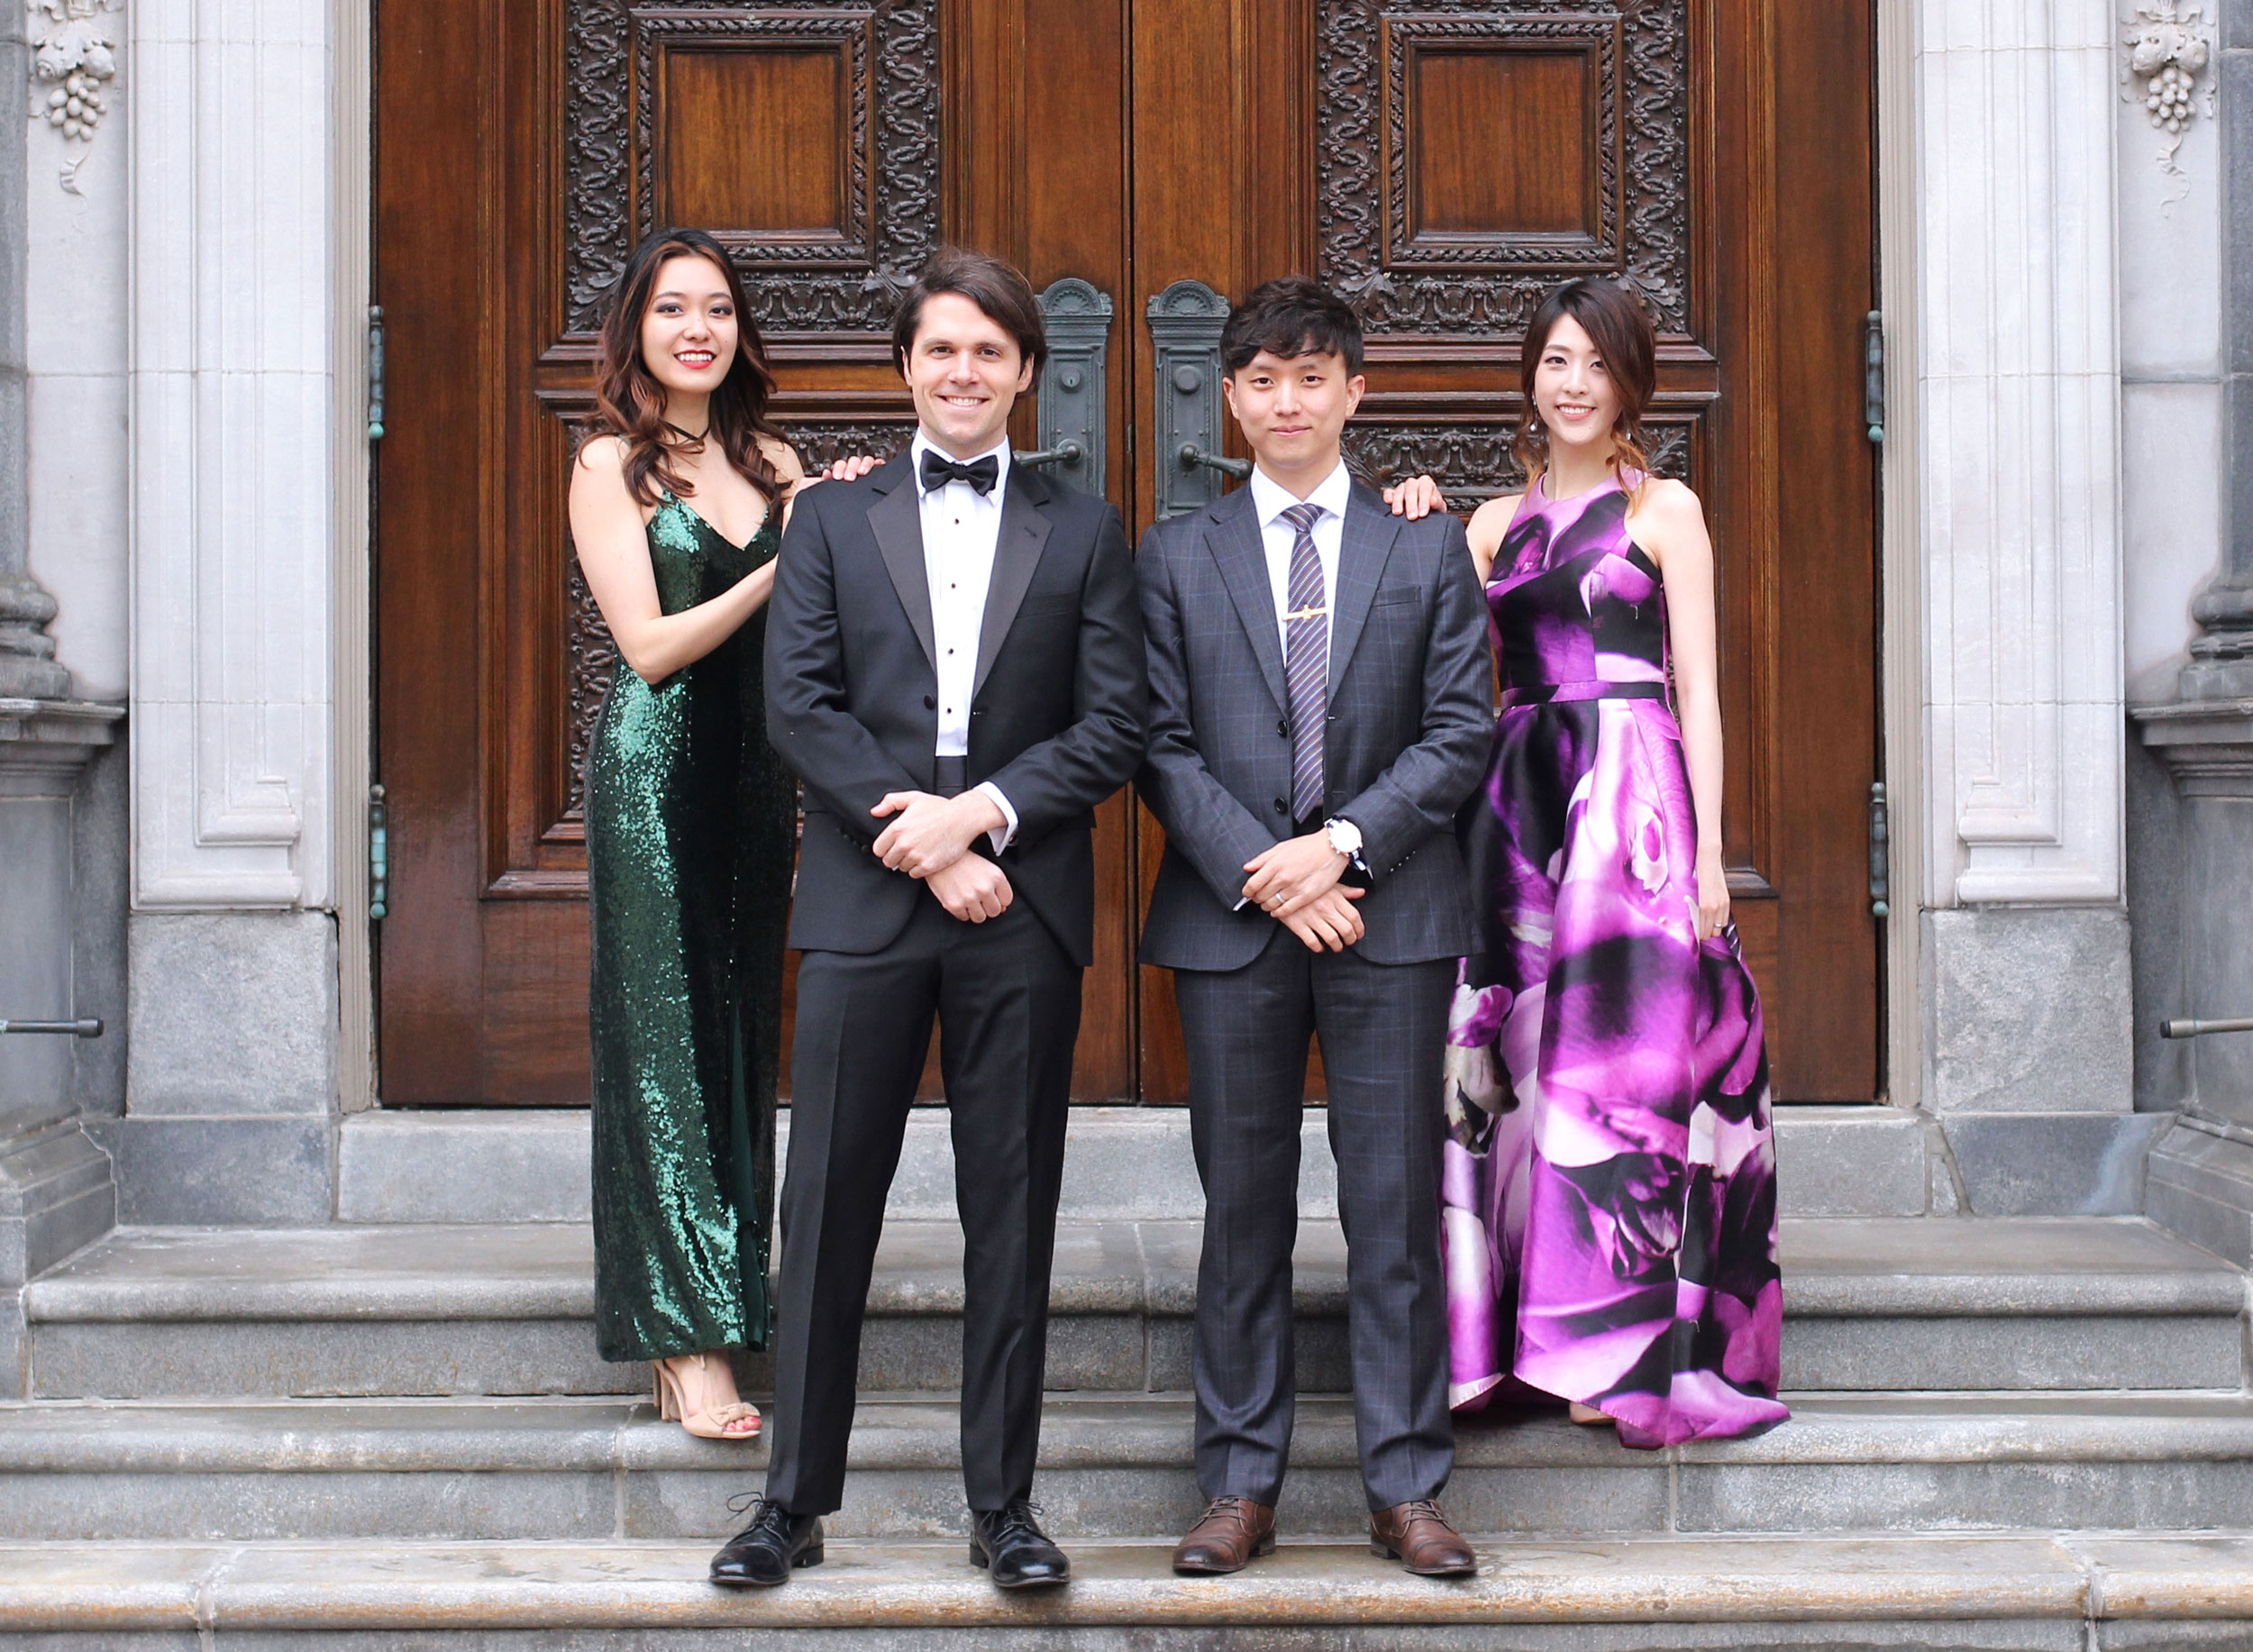 Barristers Ball - Harvard Law School black tie formal